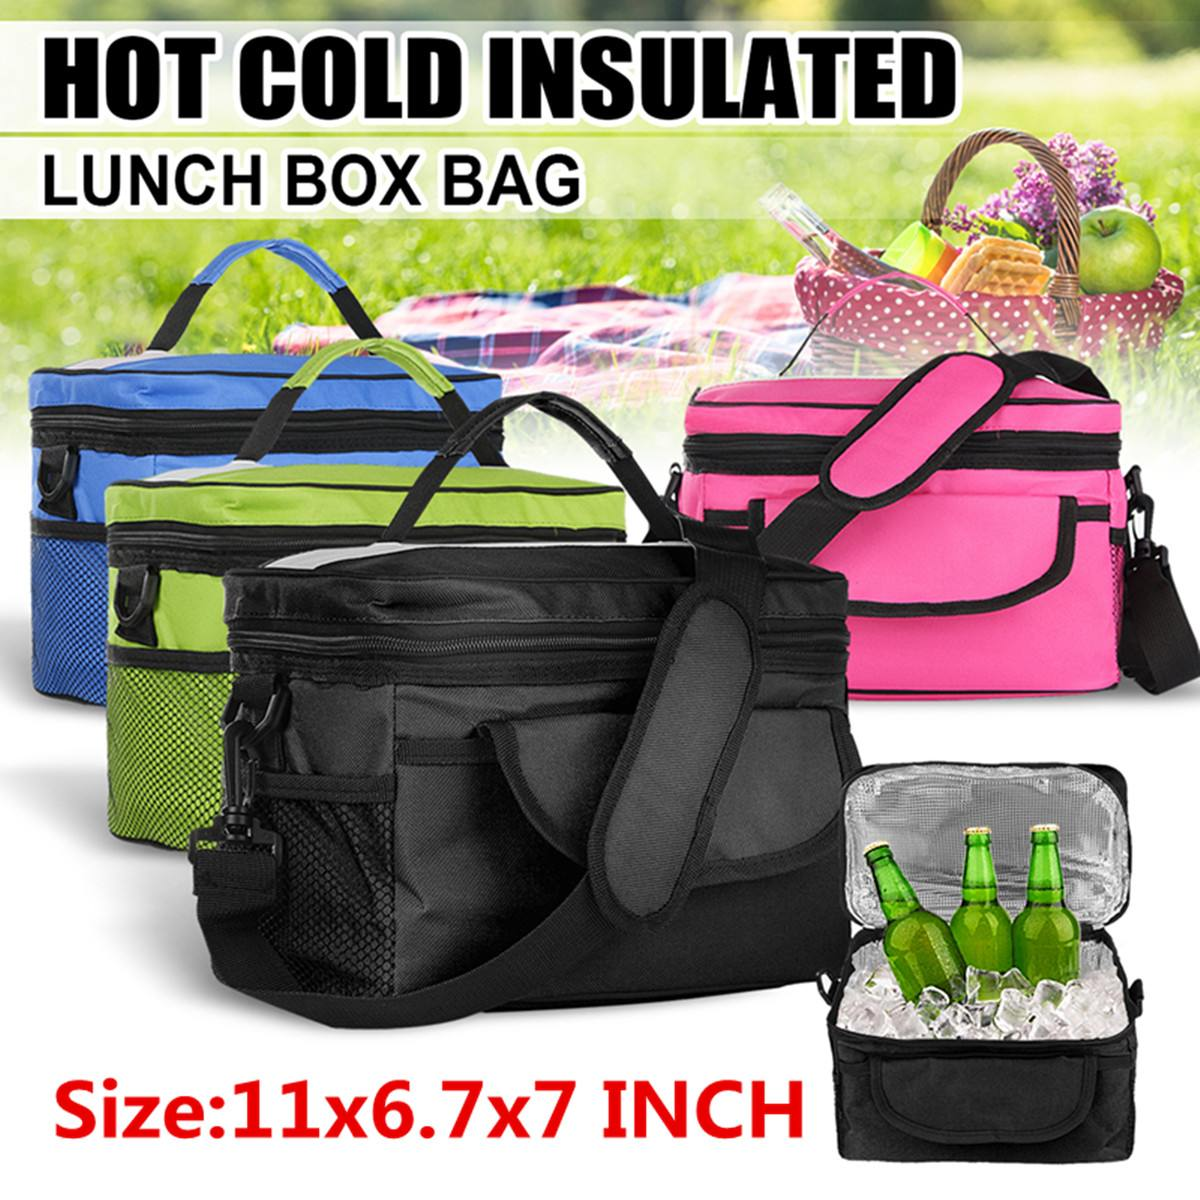 8L Oxford Insulated Thermal Cooler Lunch Box Bag Backpack Picnic Bag Food Thermal Bag for Outdoor Camping Travel 28x17x18cm image